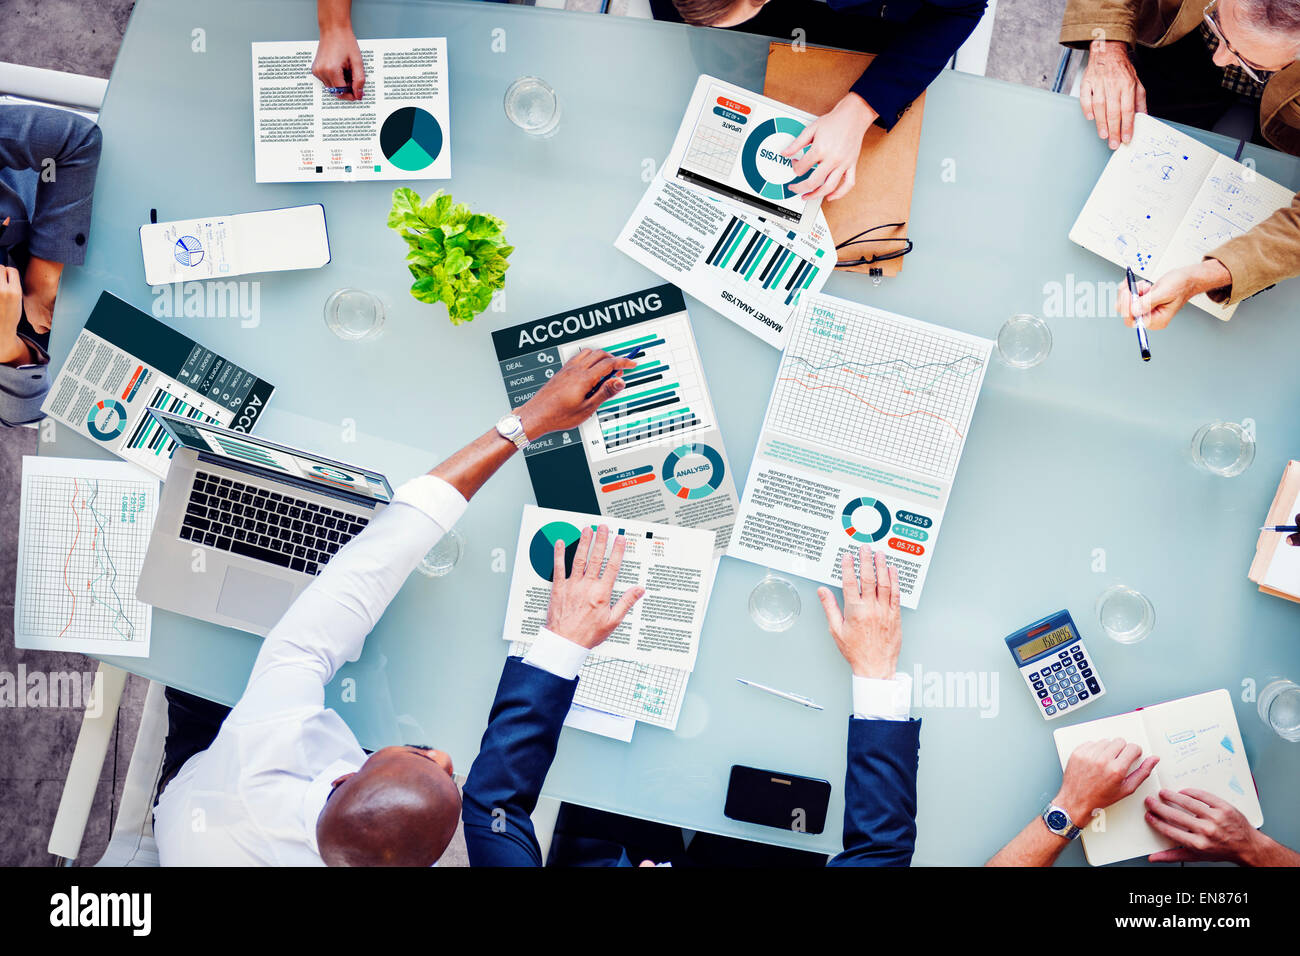 Les gens d'affaires rapport comptable Concept Analyse Photo Stock